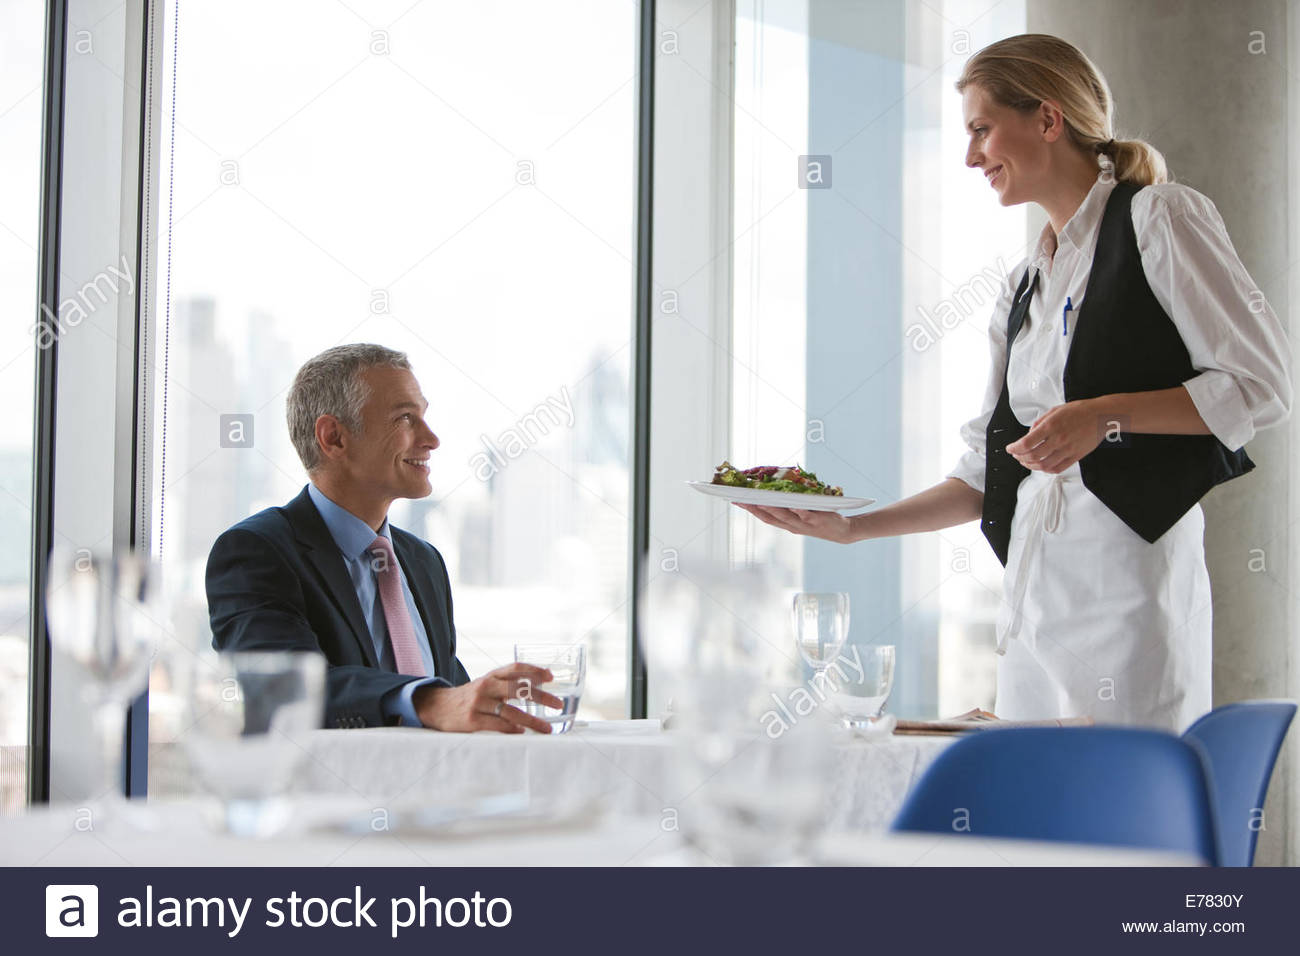 Waitress serving meal to businessman in restaurant - Stock Image